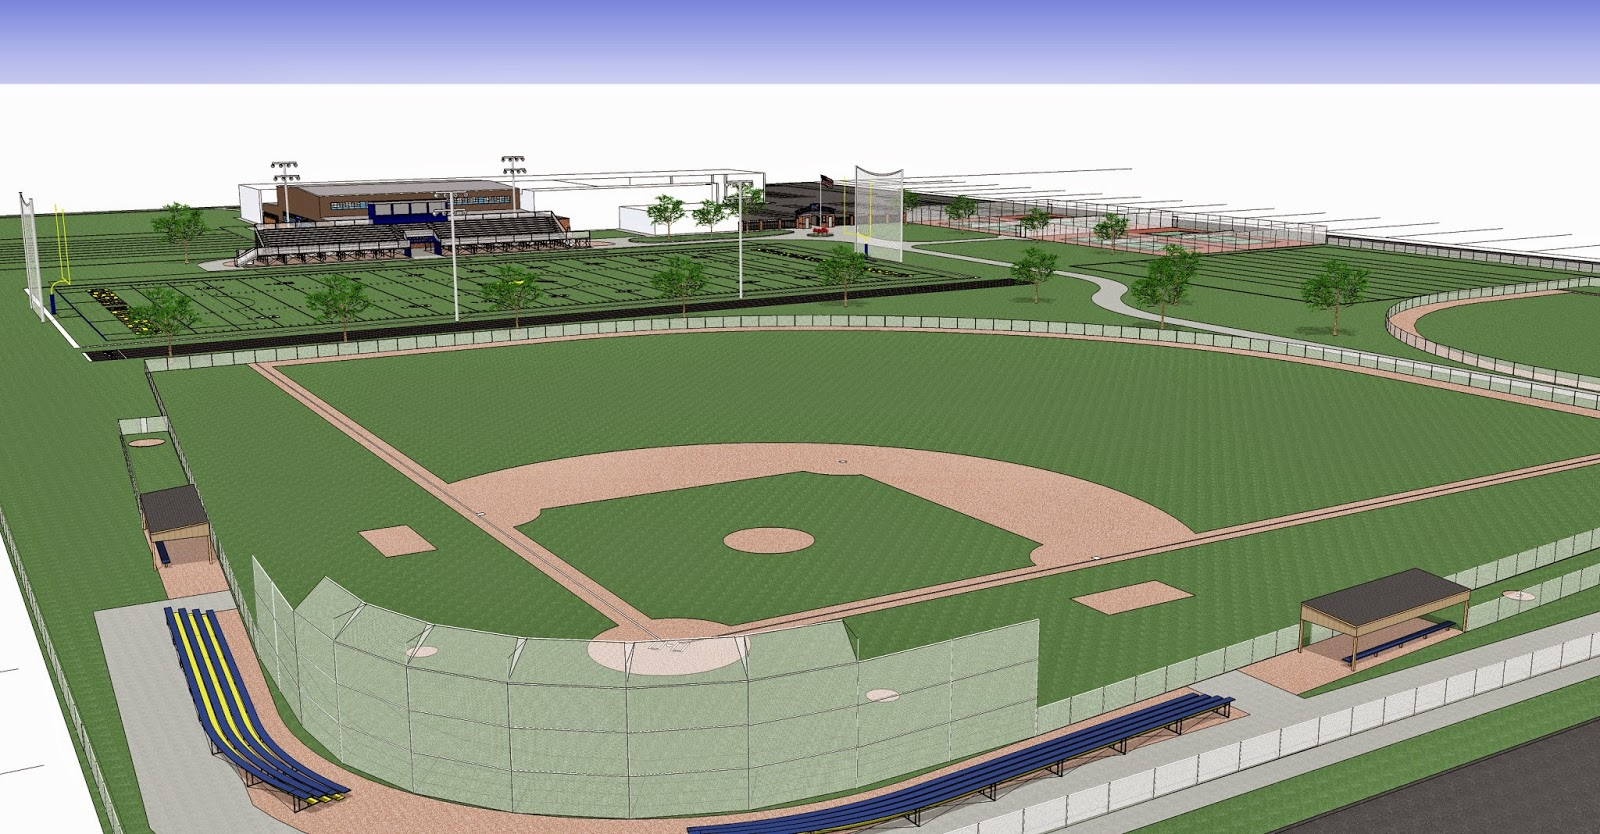 In a design phase to make some layout changes to the athletic fields and bring the building design up to current building and energy codes